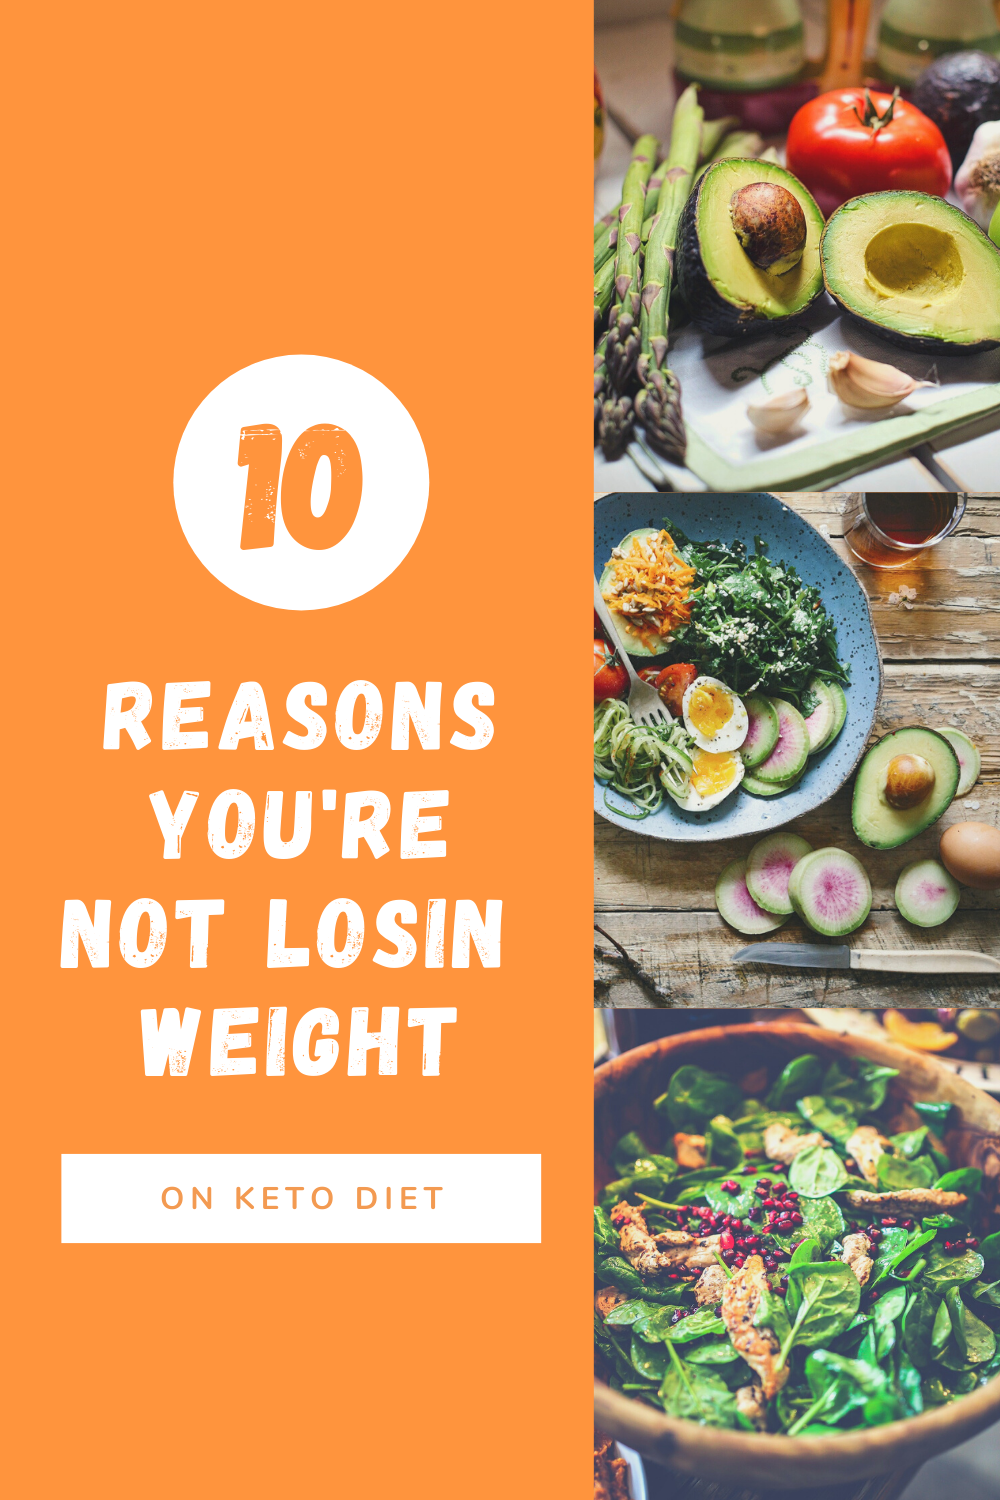 10 Reasons You Are Not Losing Weight On Keto Diet in 2020 ...